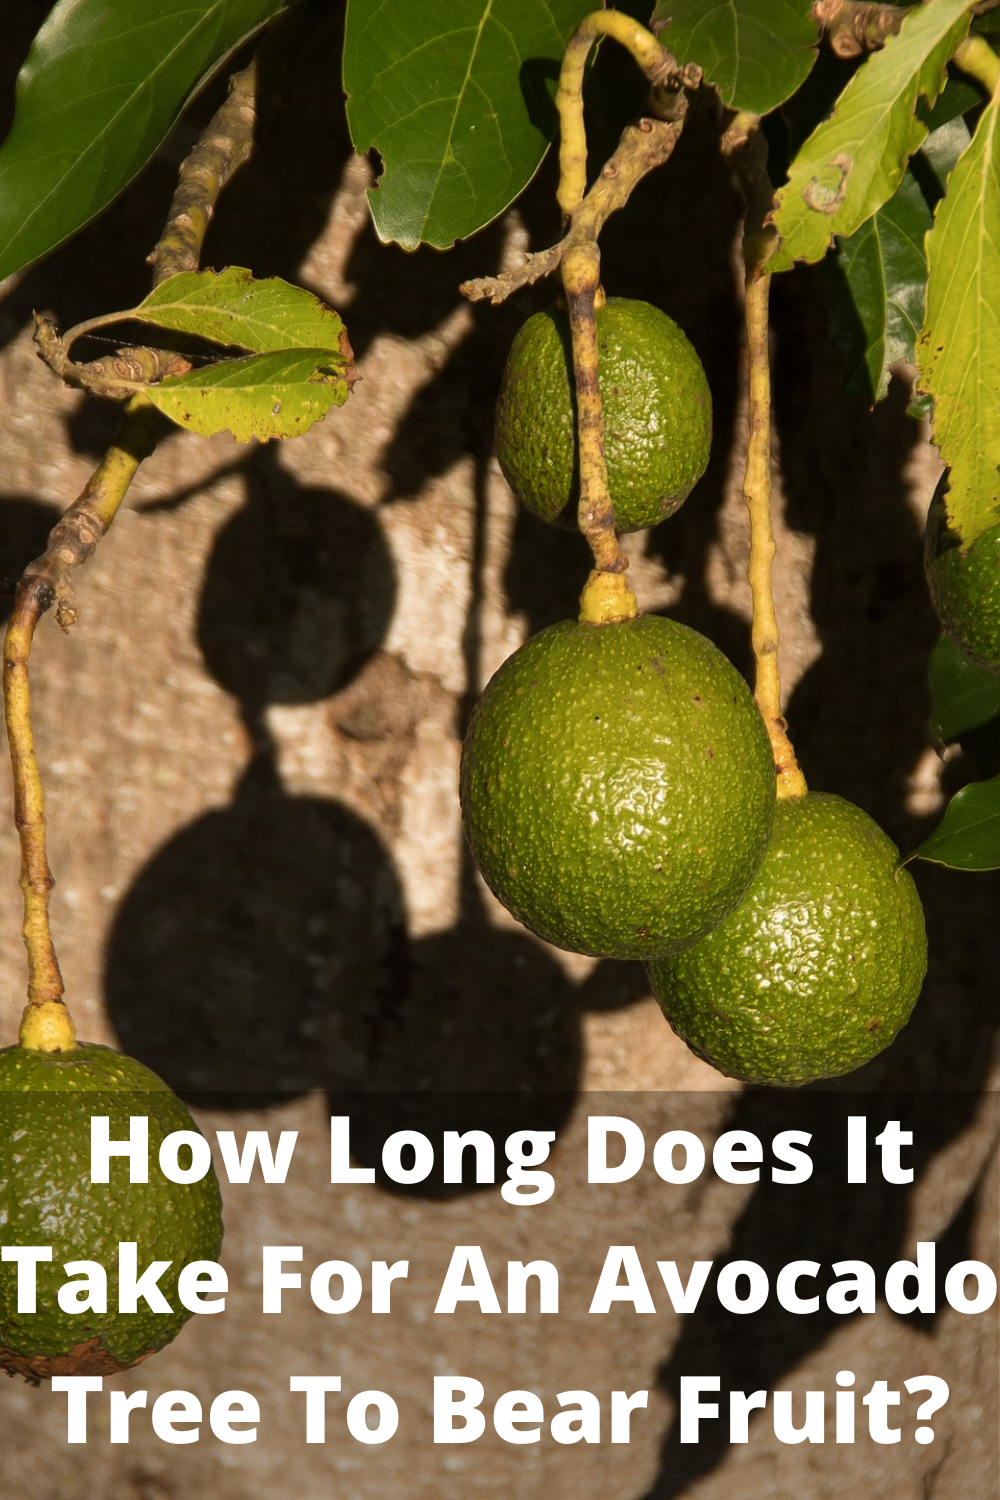 How Long Does It Take For An Avocado Tree To Bear Fruit Avocado Tree Growing An Avocado Tree Fruit